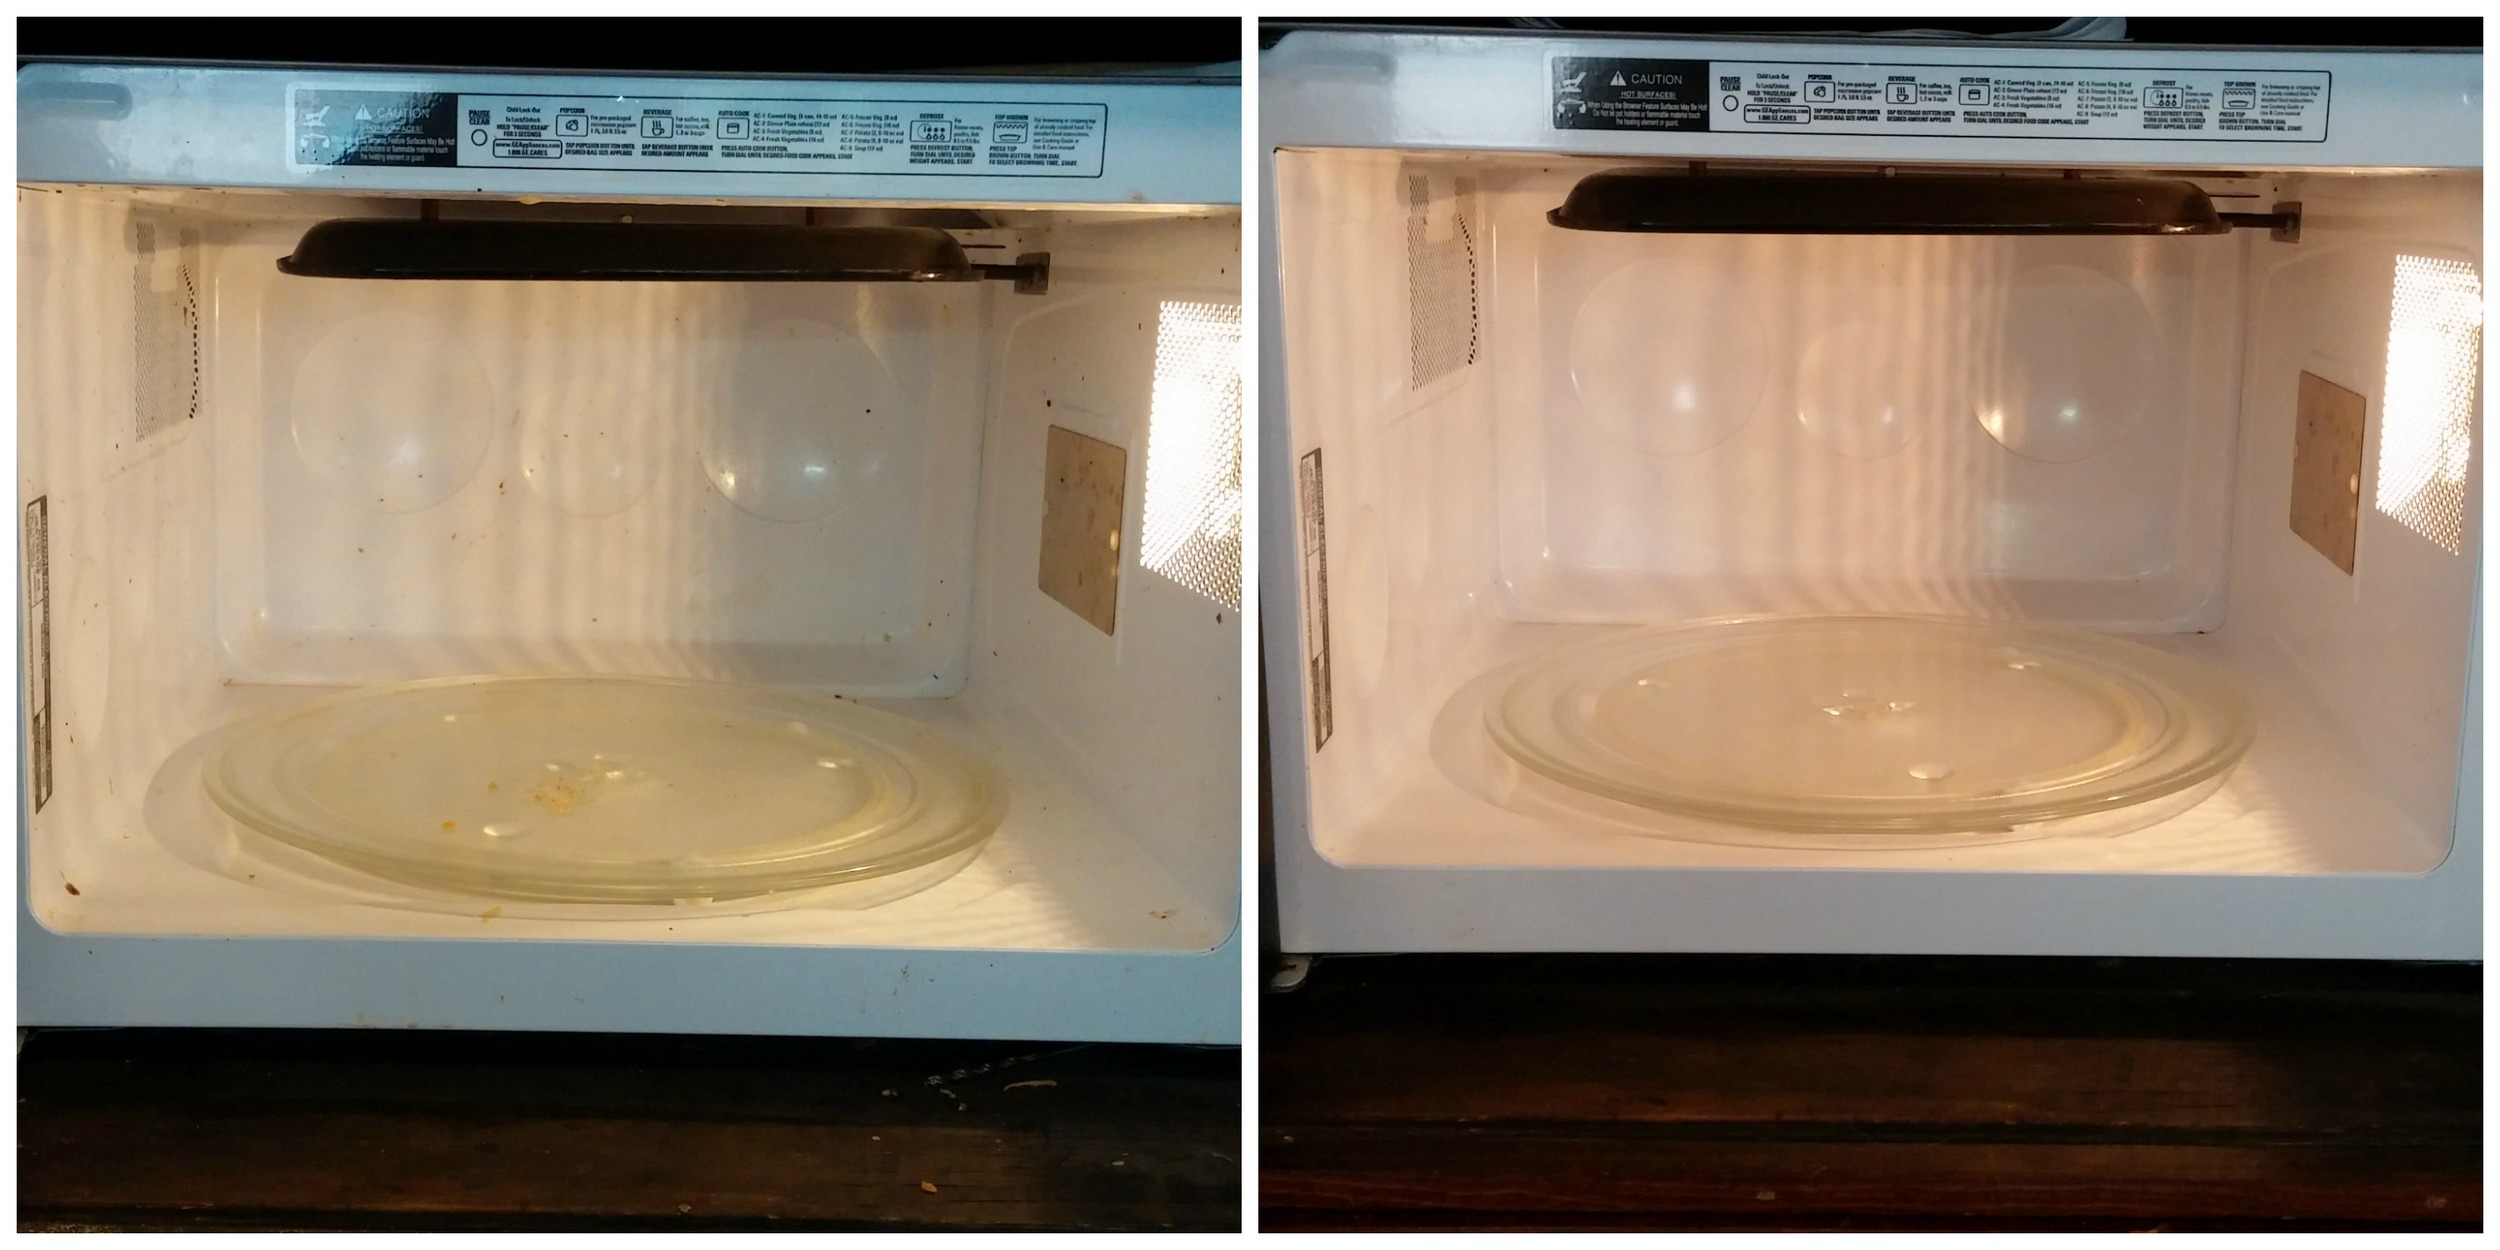 Before and after, inside the microwave